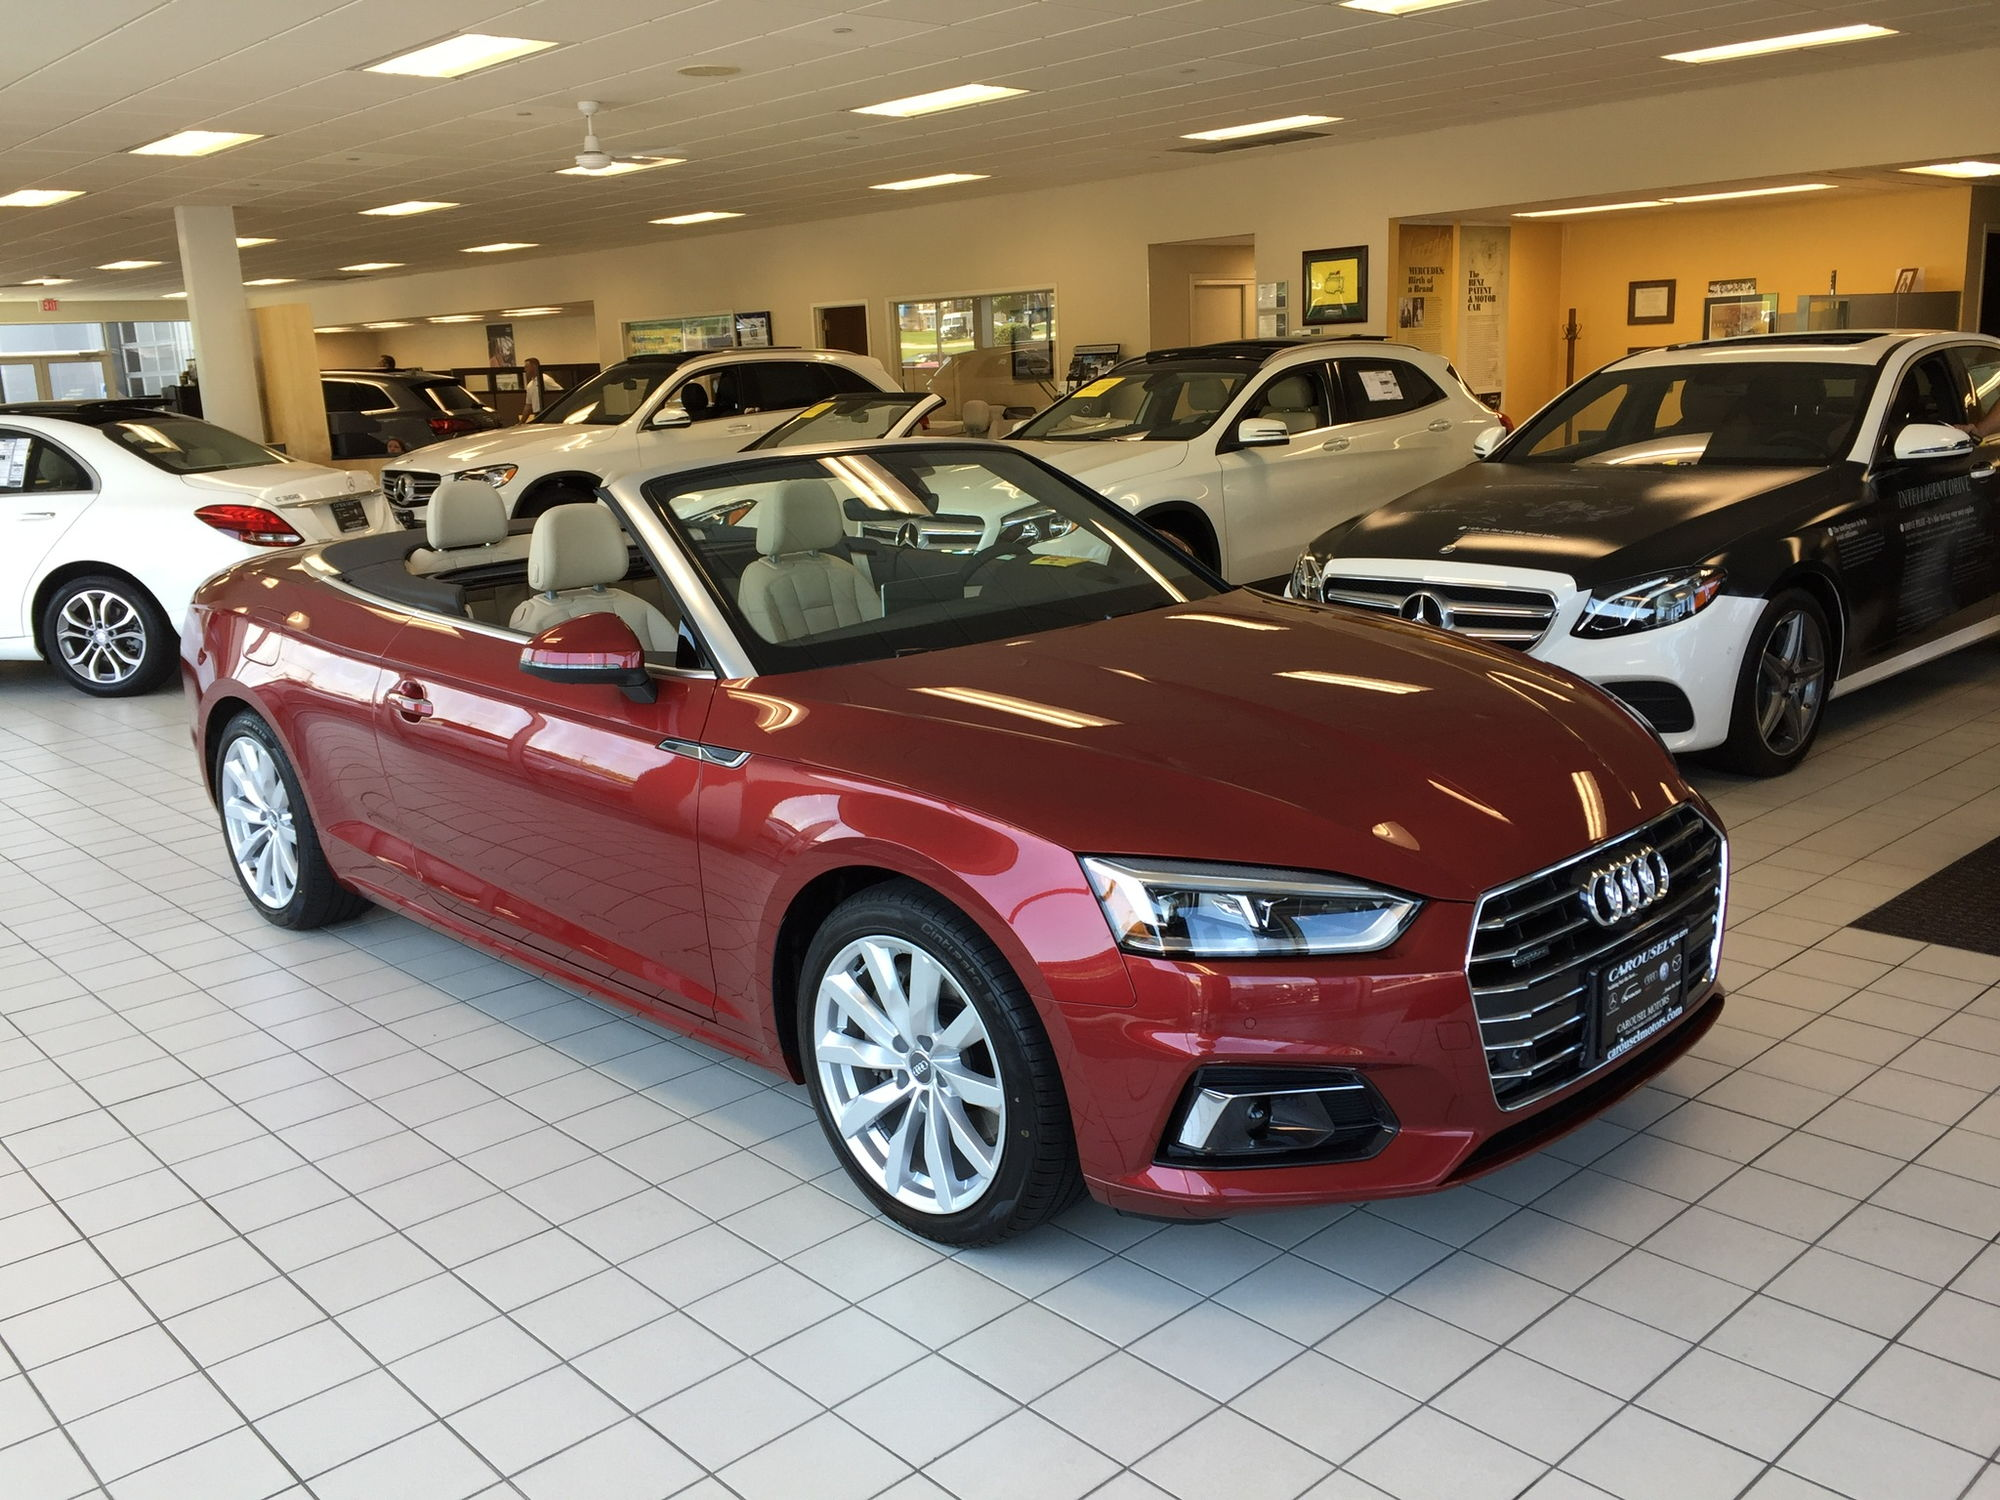 My matador red cabriolet arrived saturday love the color photo attached